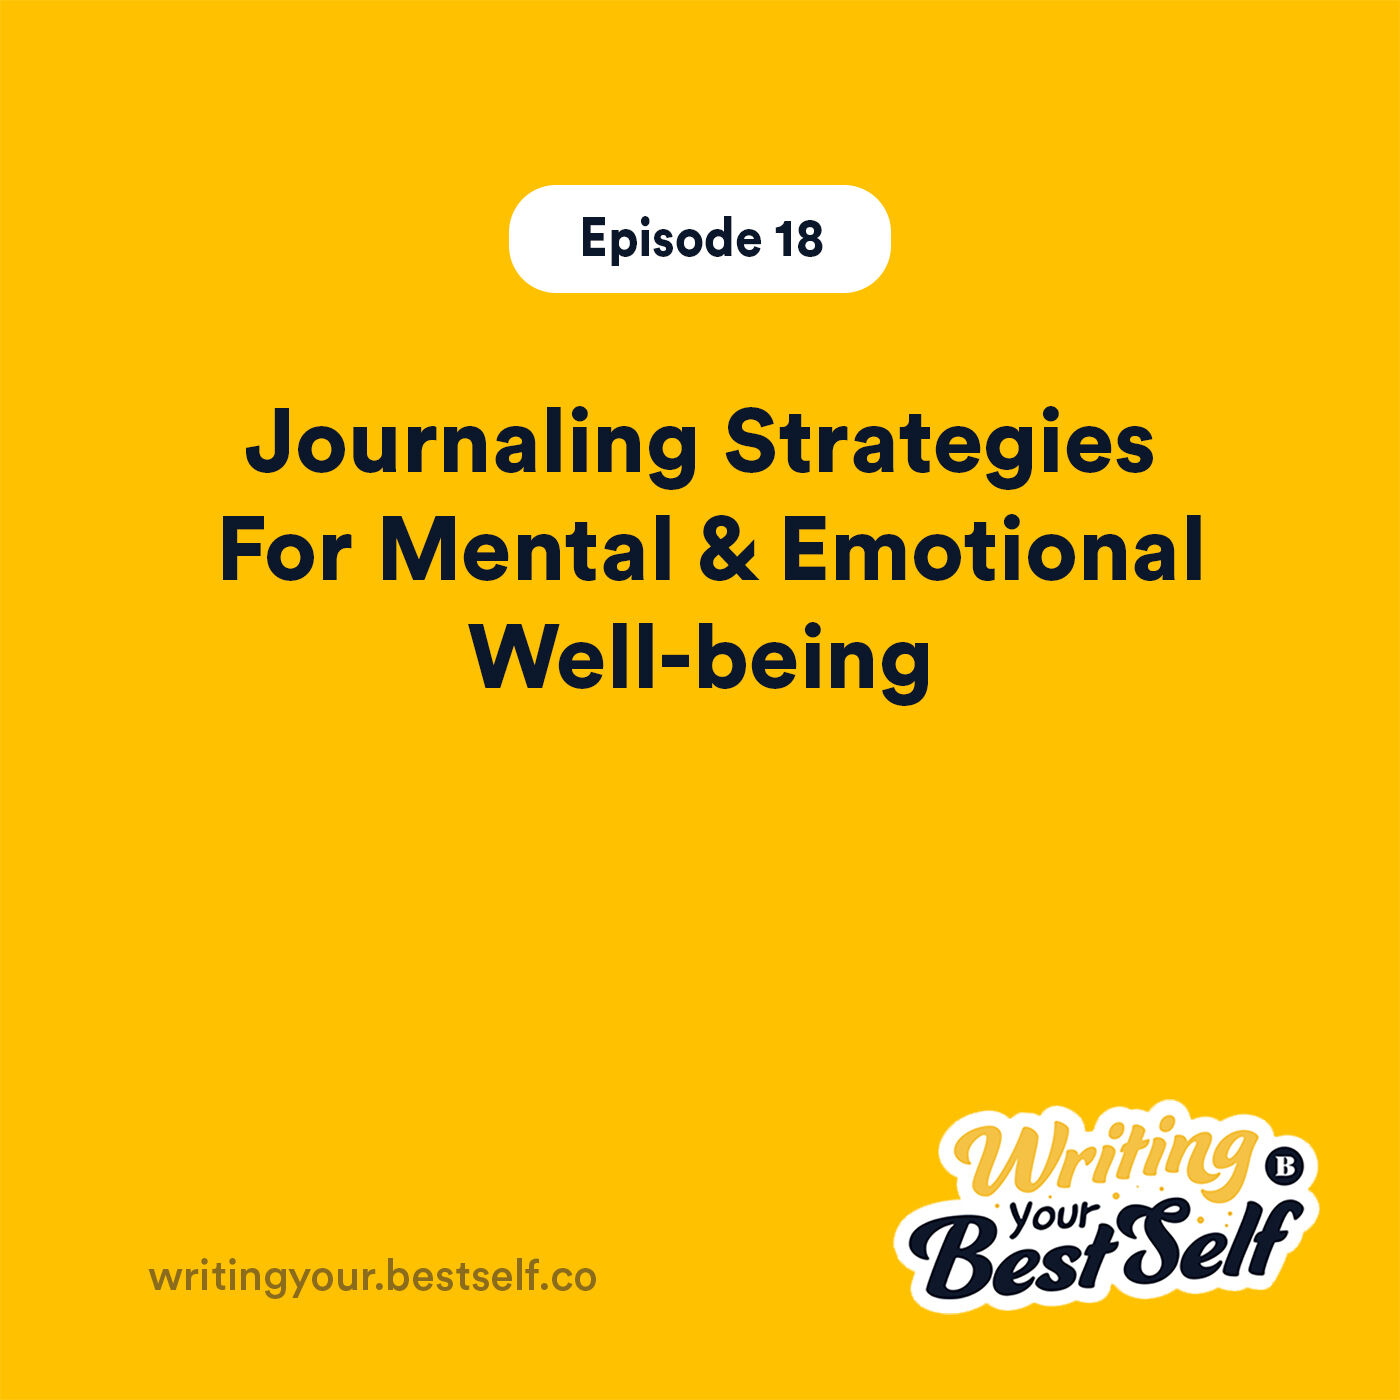 Journaling Strategies For Mental & Emotional Well-being